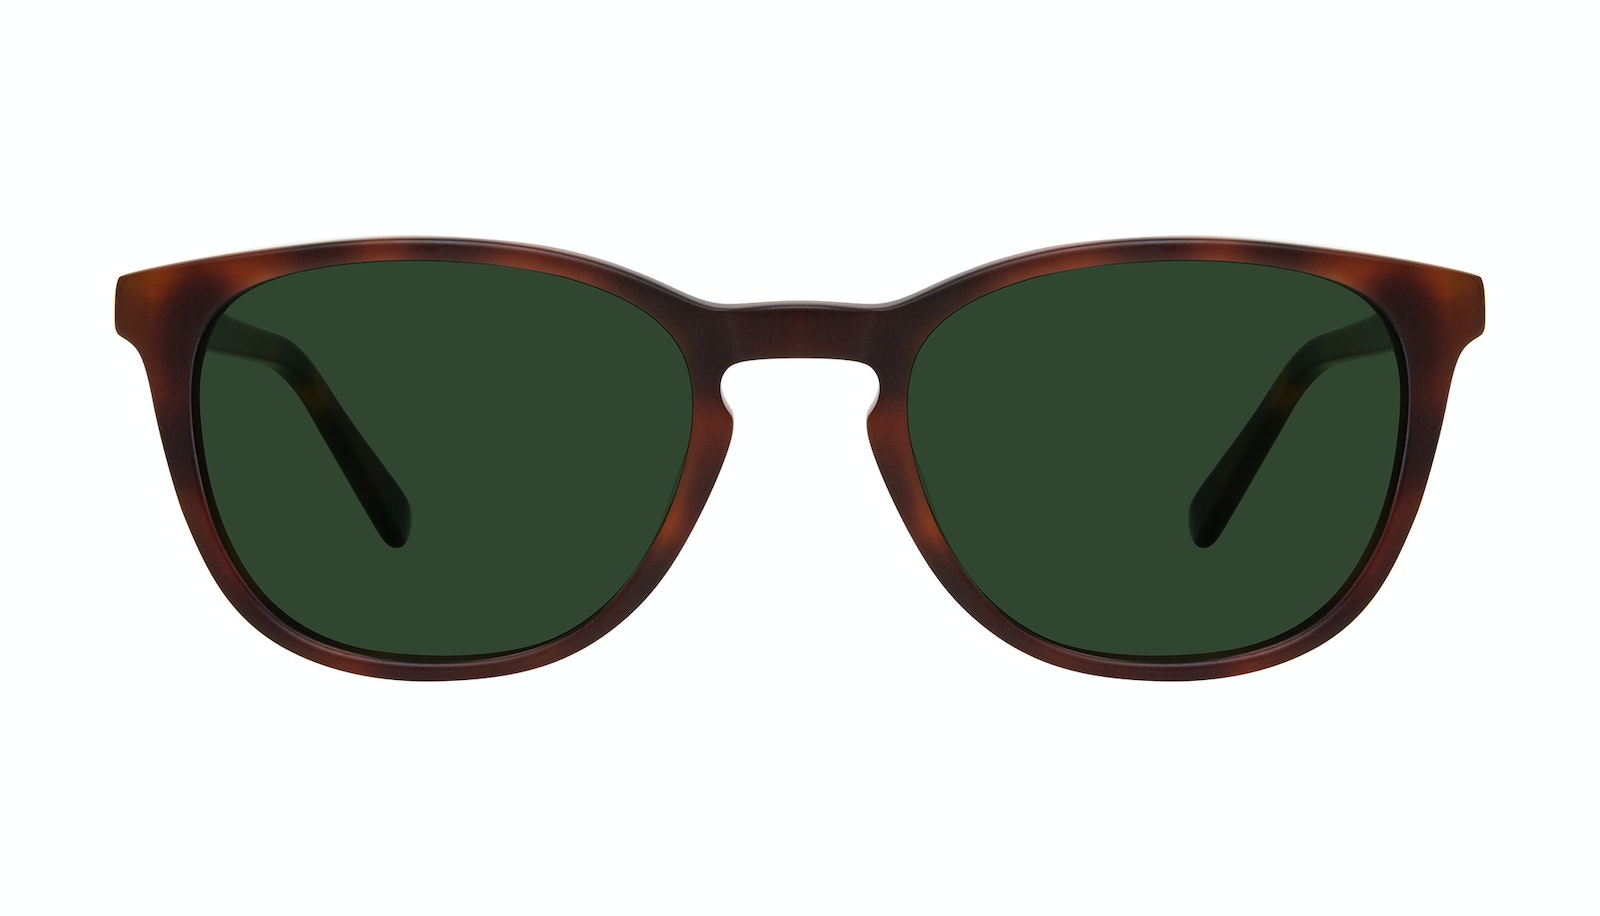 Affordable Fashion Glasses Square Sunglasses Men Swerve Matte Tortoise